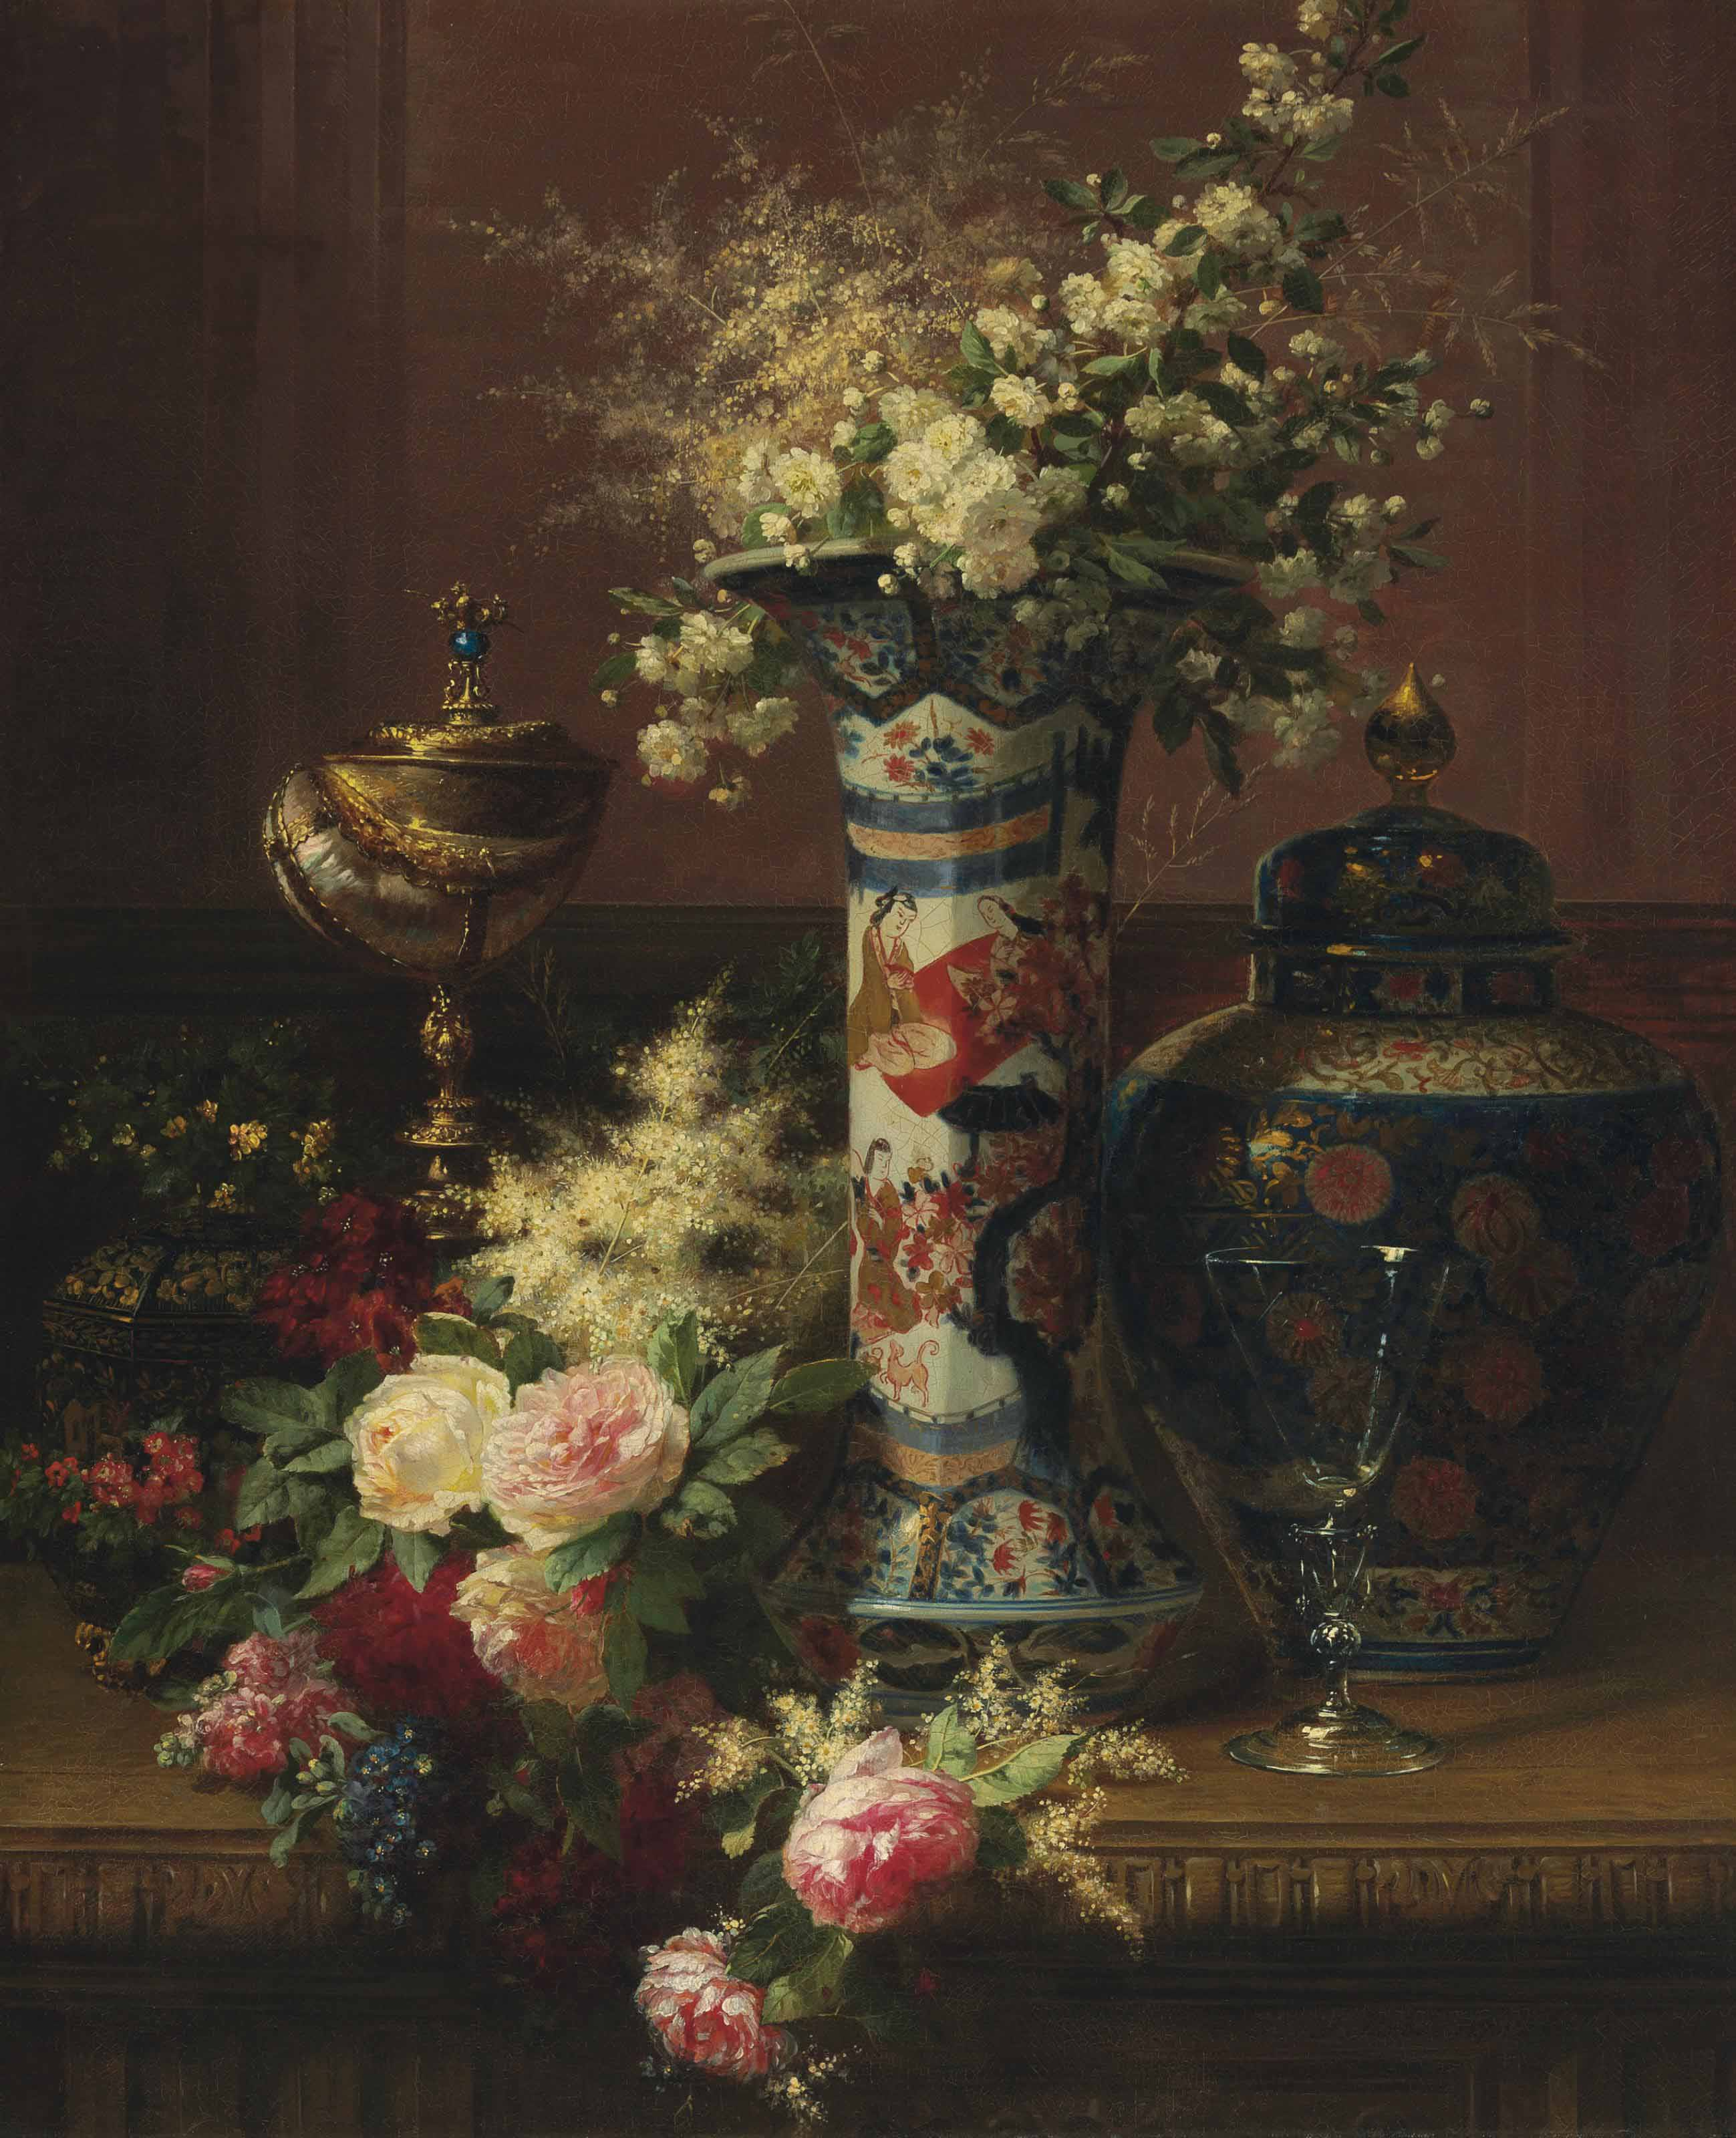 Roses, Peonies and Forget-me-nots in a Japanese Vase